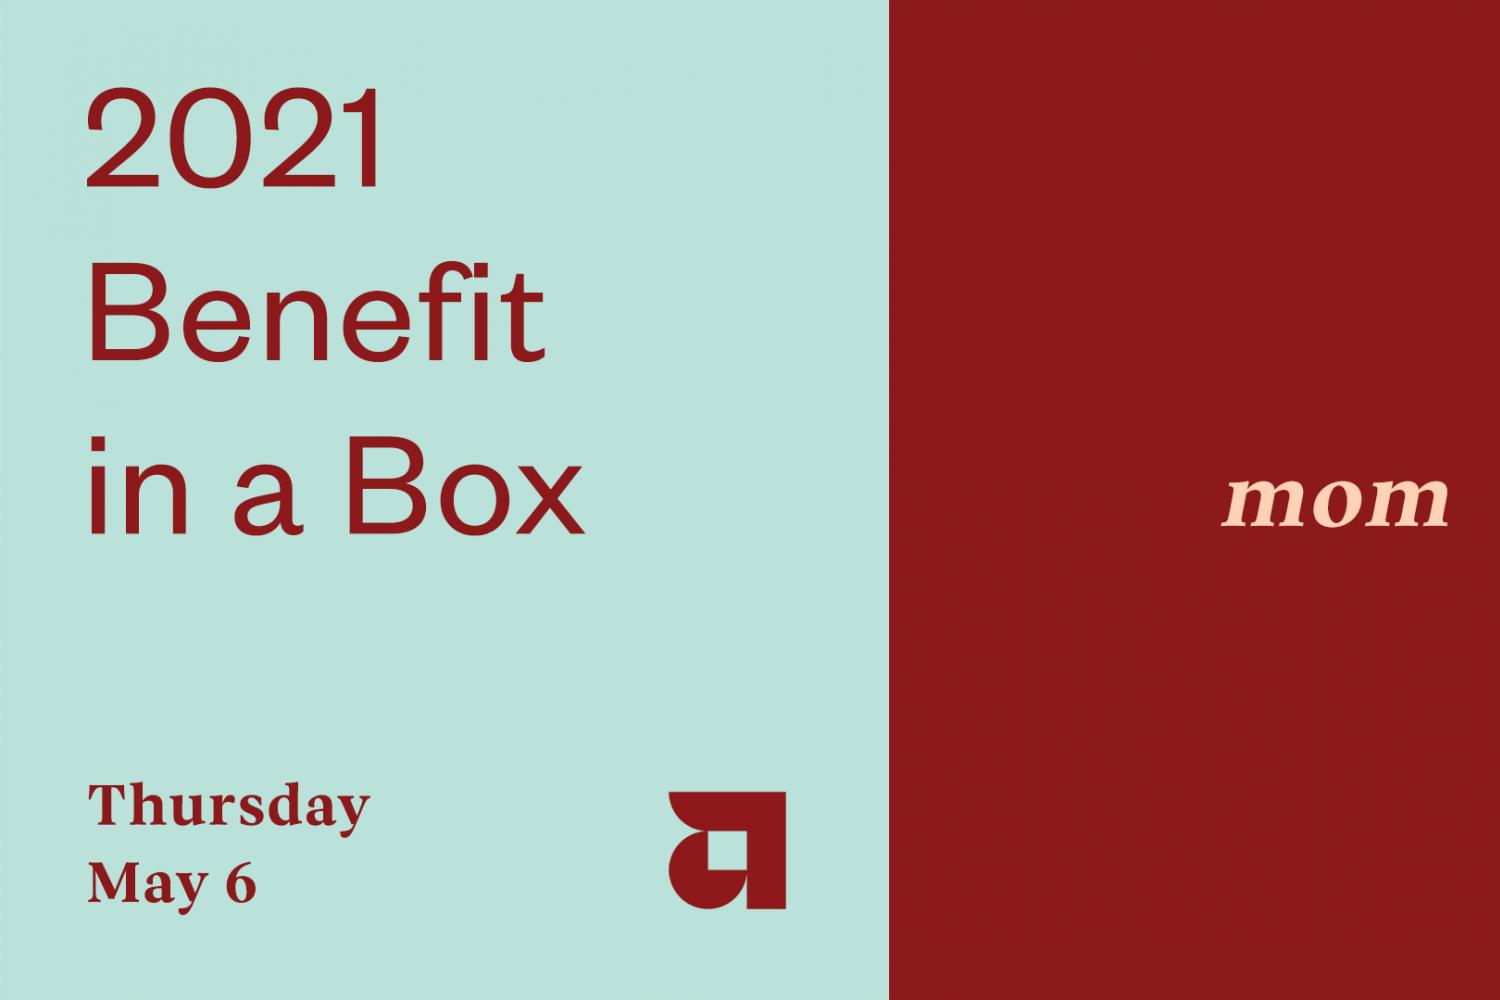 "Event flyer split down the middle in two color backgrounds (light blue on the left, maroon on the right). Maroon text on the left reads ""2021 Benefit in a Box, Thursday, May 6"" on the light blue background. Centered on the maroon side in white is the text: ""mom"""